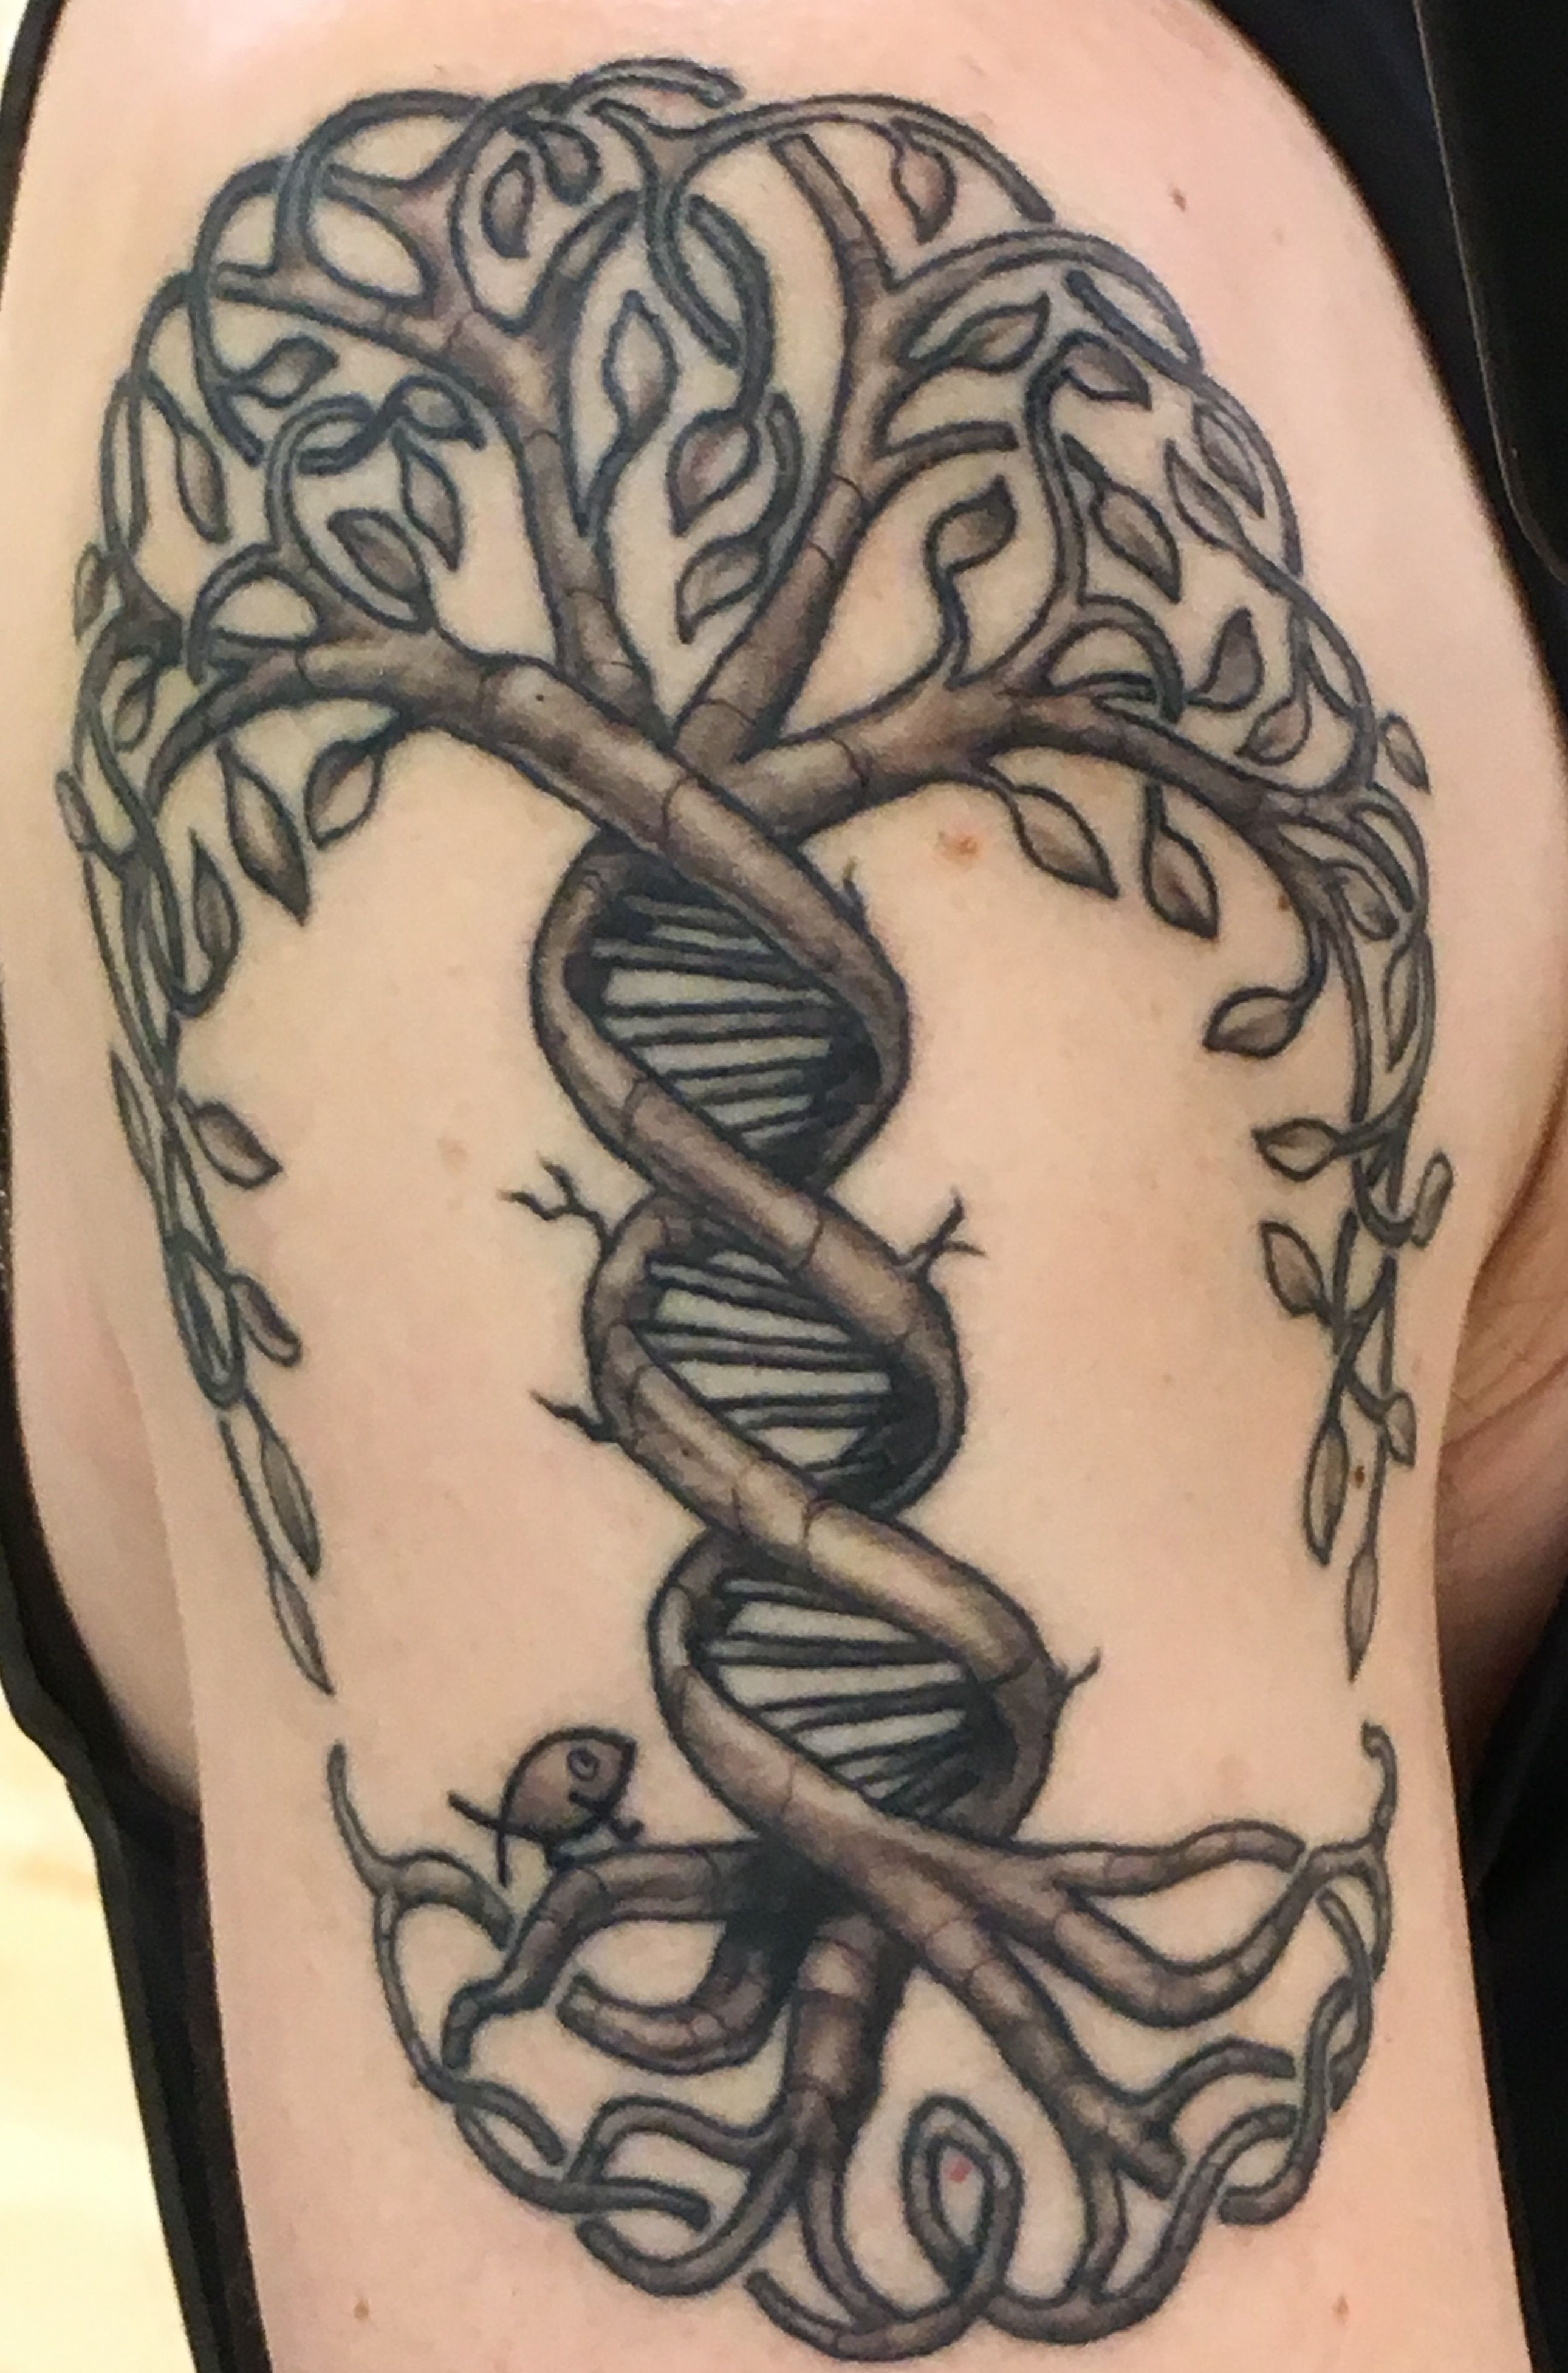 Evolution tree of life with DNA strand and Charles Darwin fish